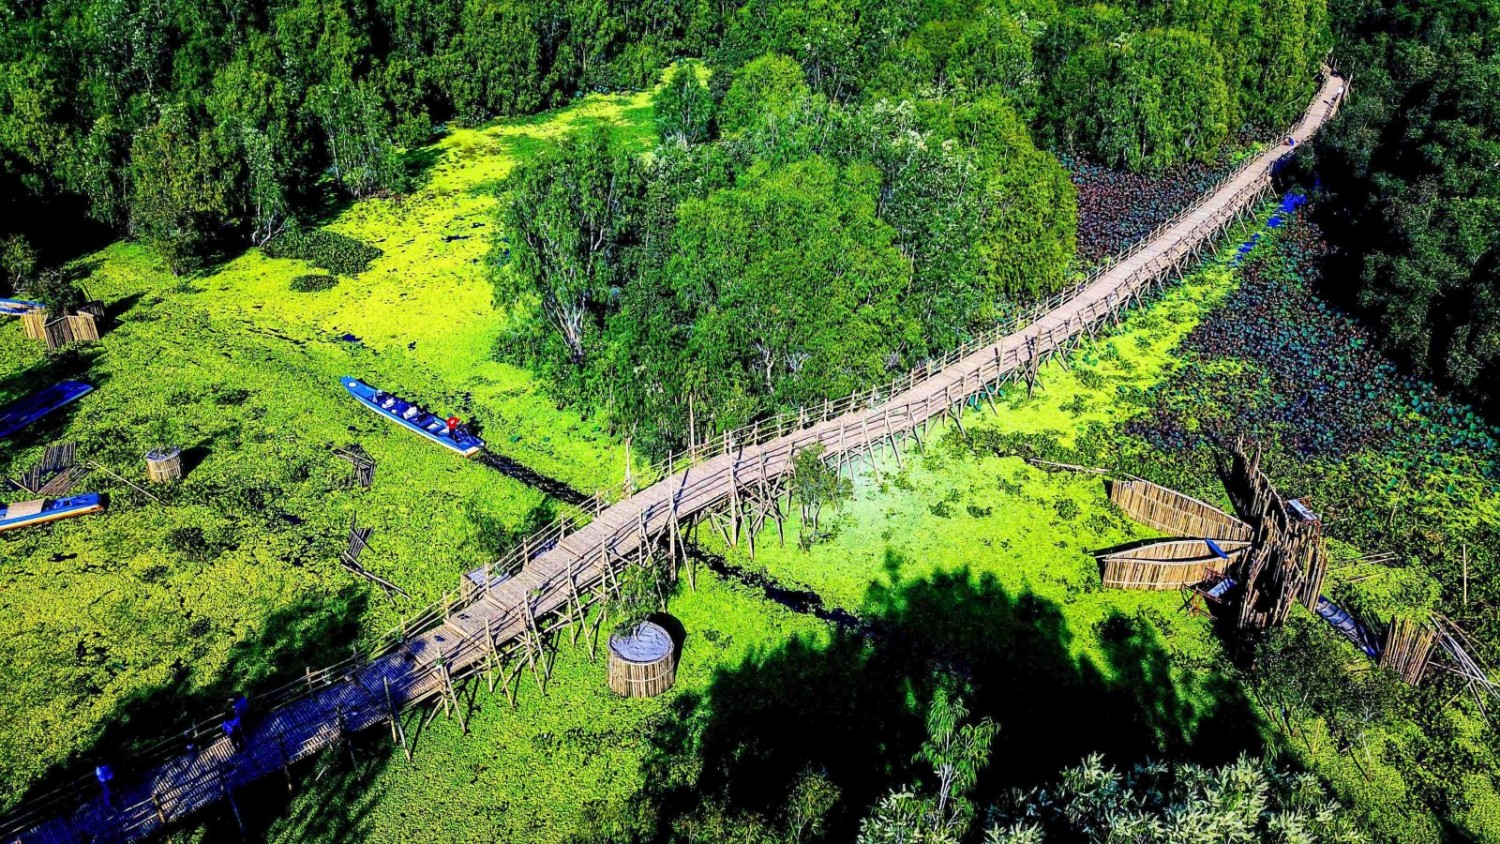 Tra Su Bamboo Bridge - The Longest Bamboo Bridge In Vietnam